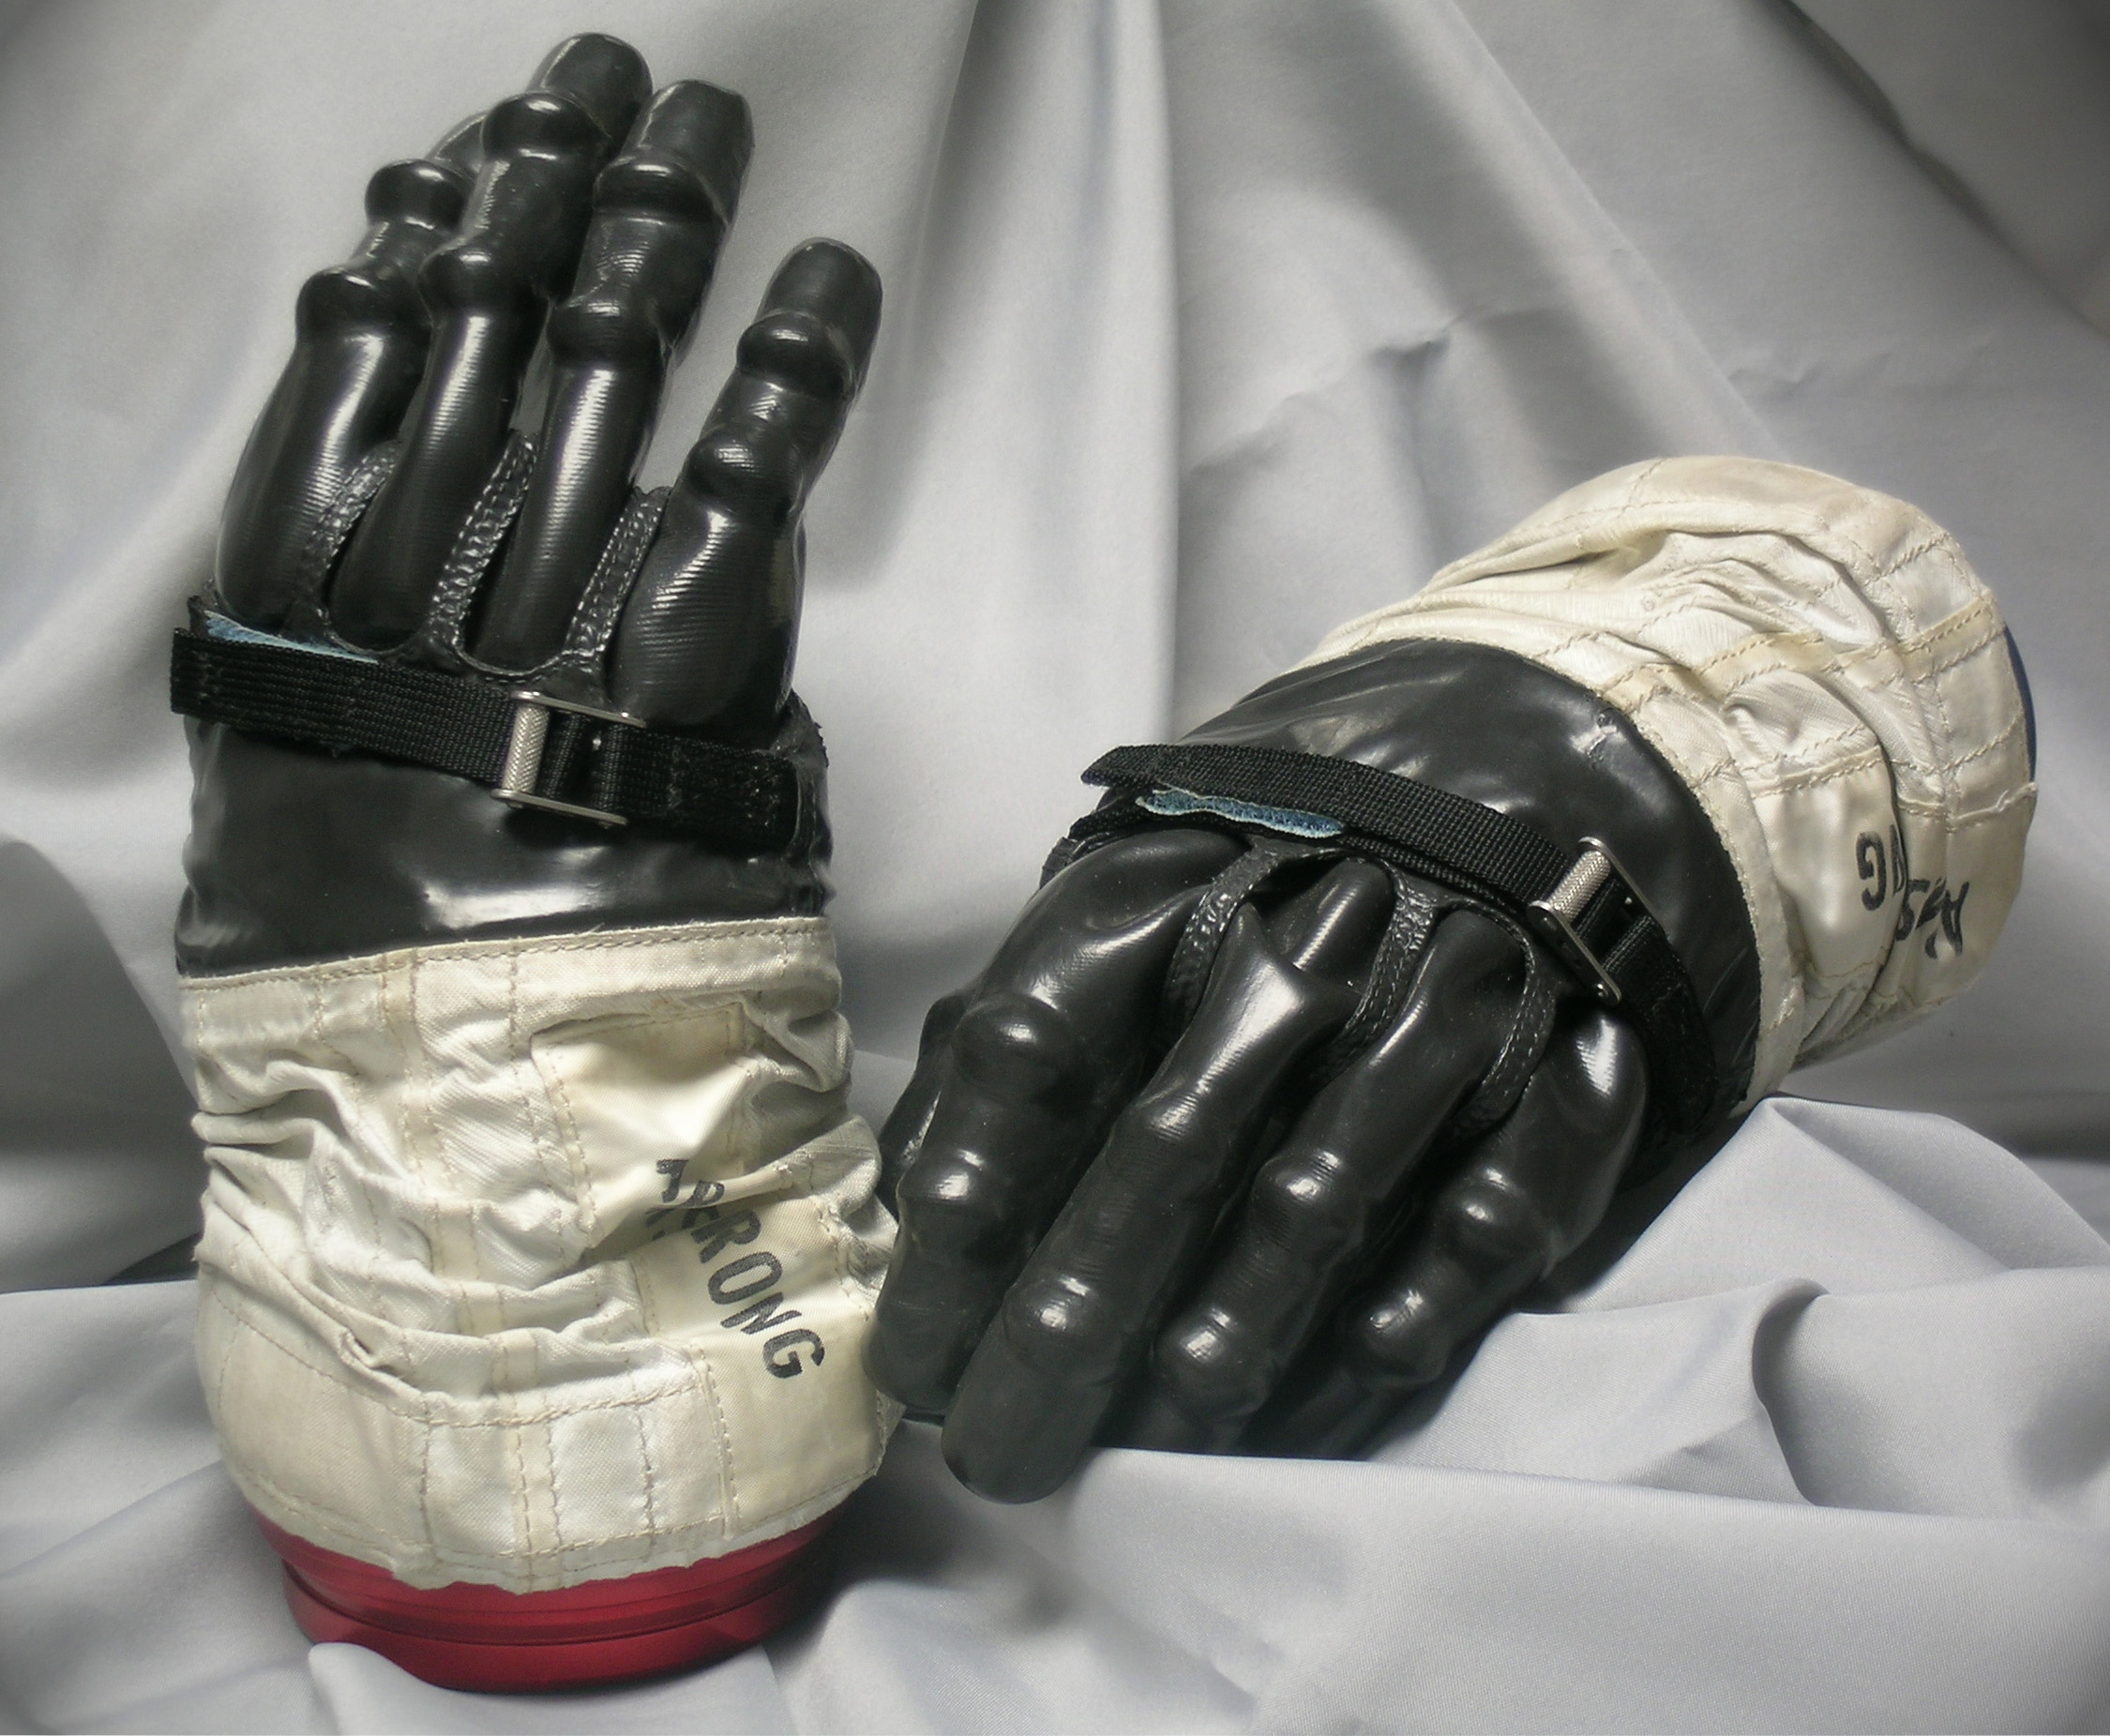 space suit glove hardware - photo #5